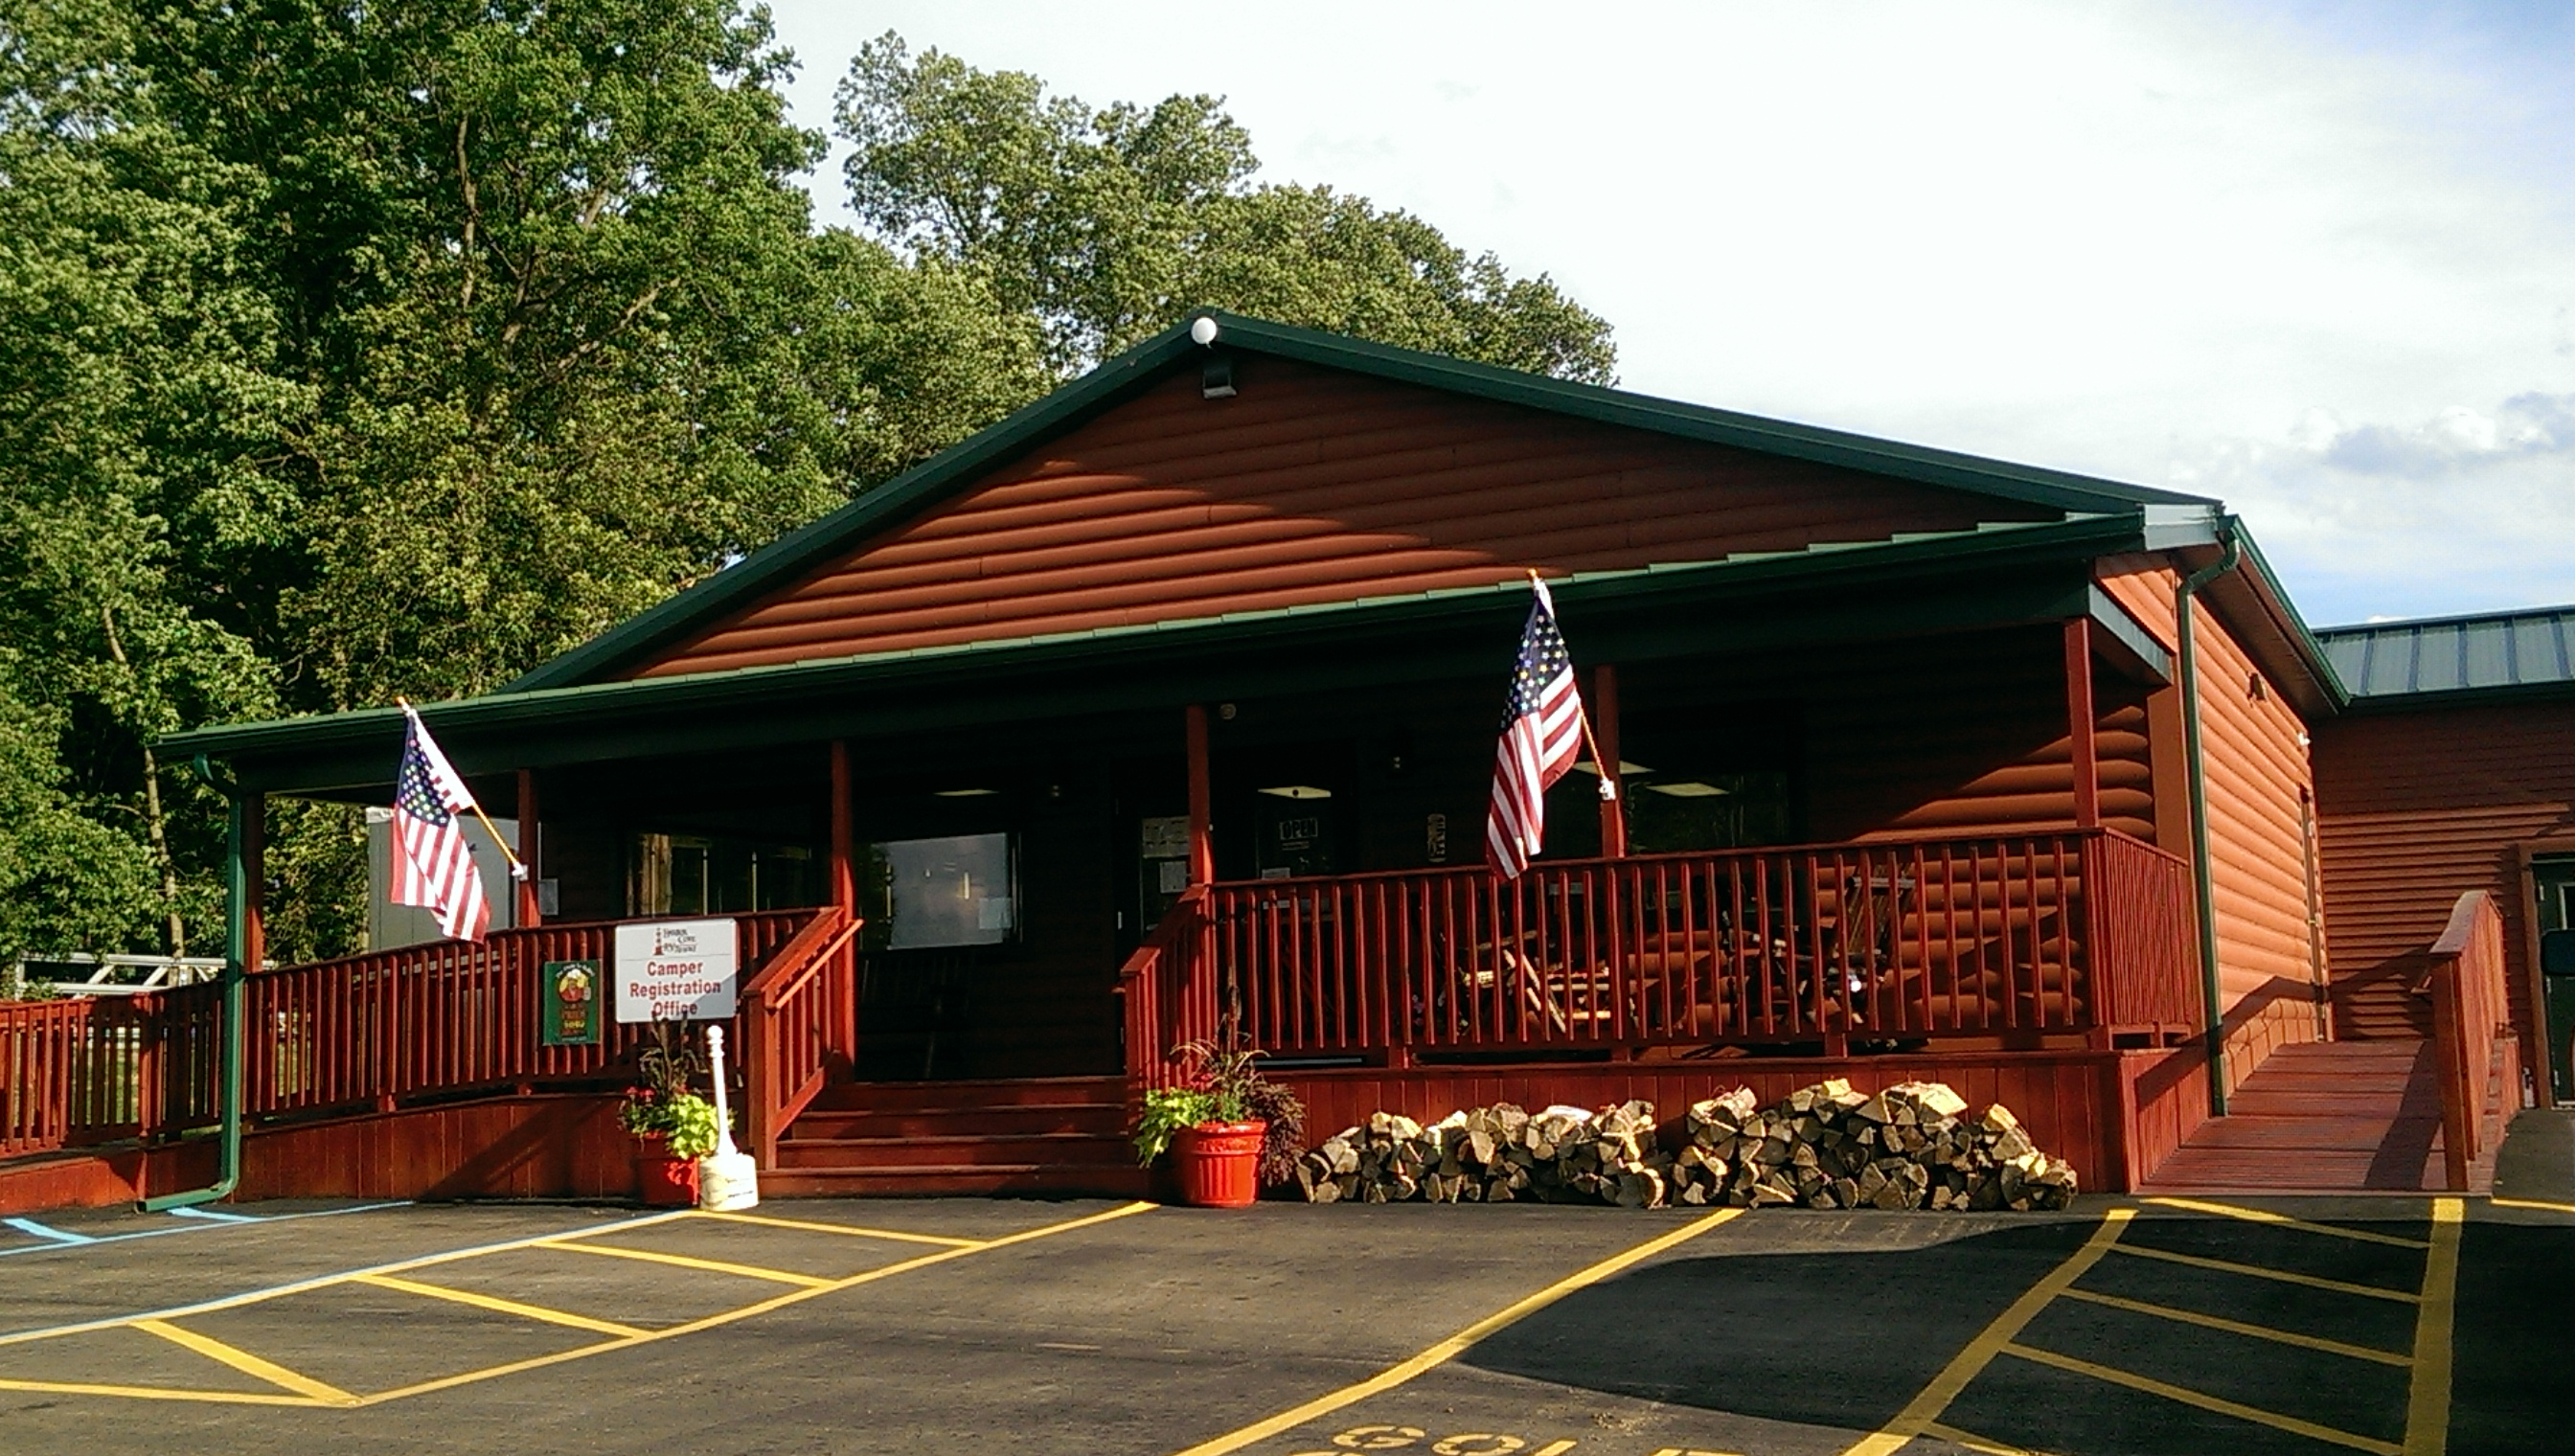 About The Harbor Cove Rv Resort In Coldwater Michigan